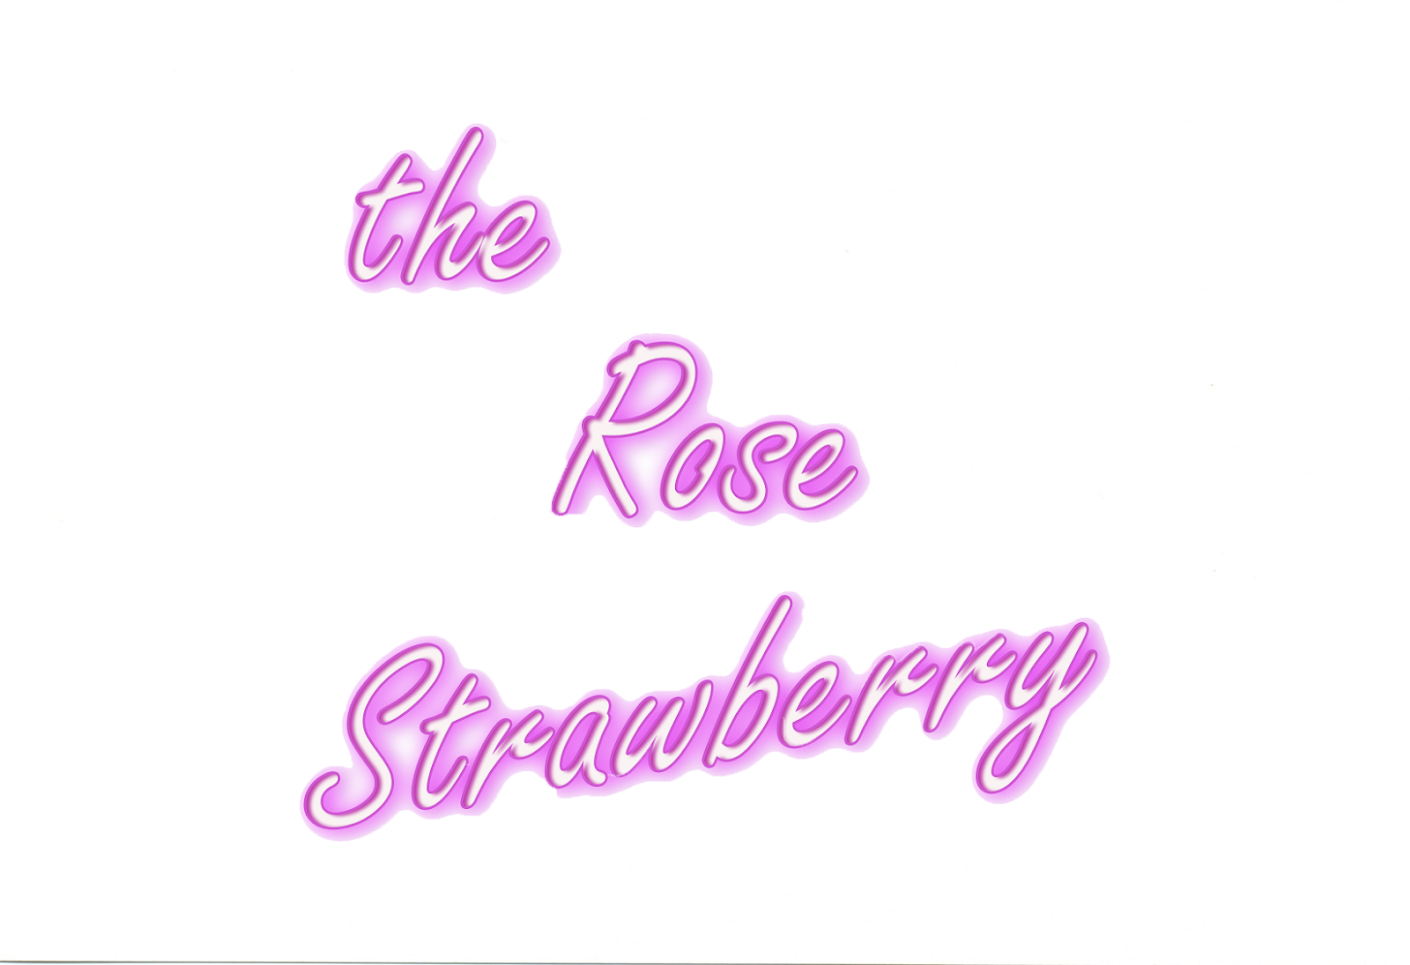 The rose strawberry